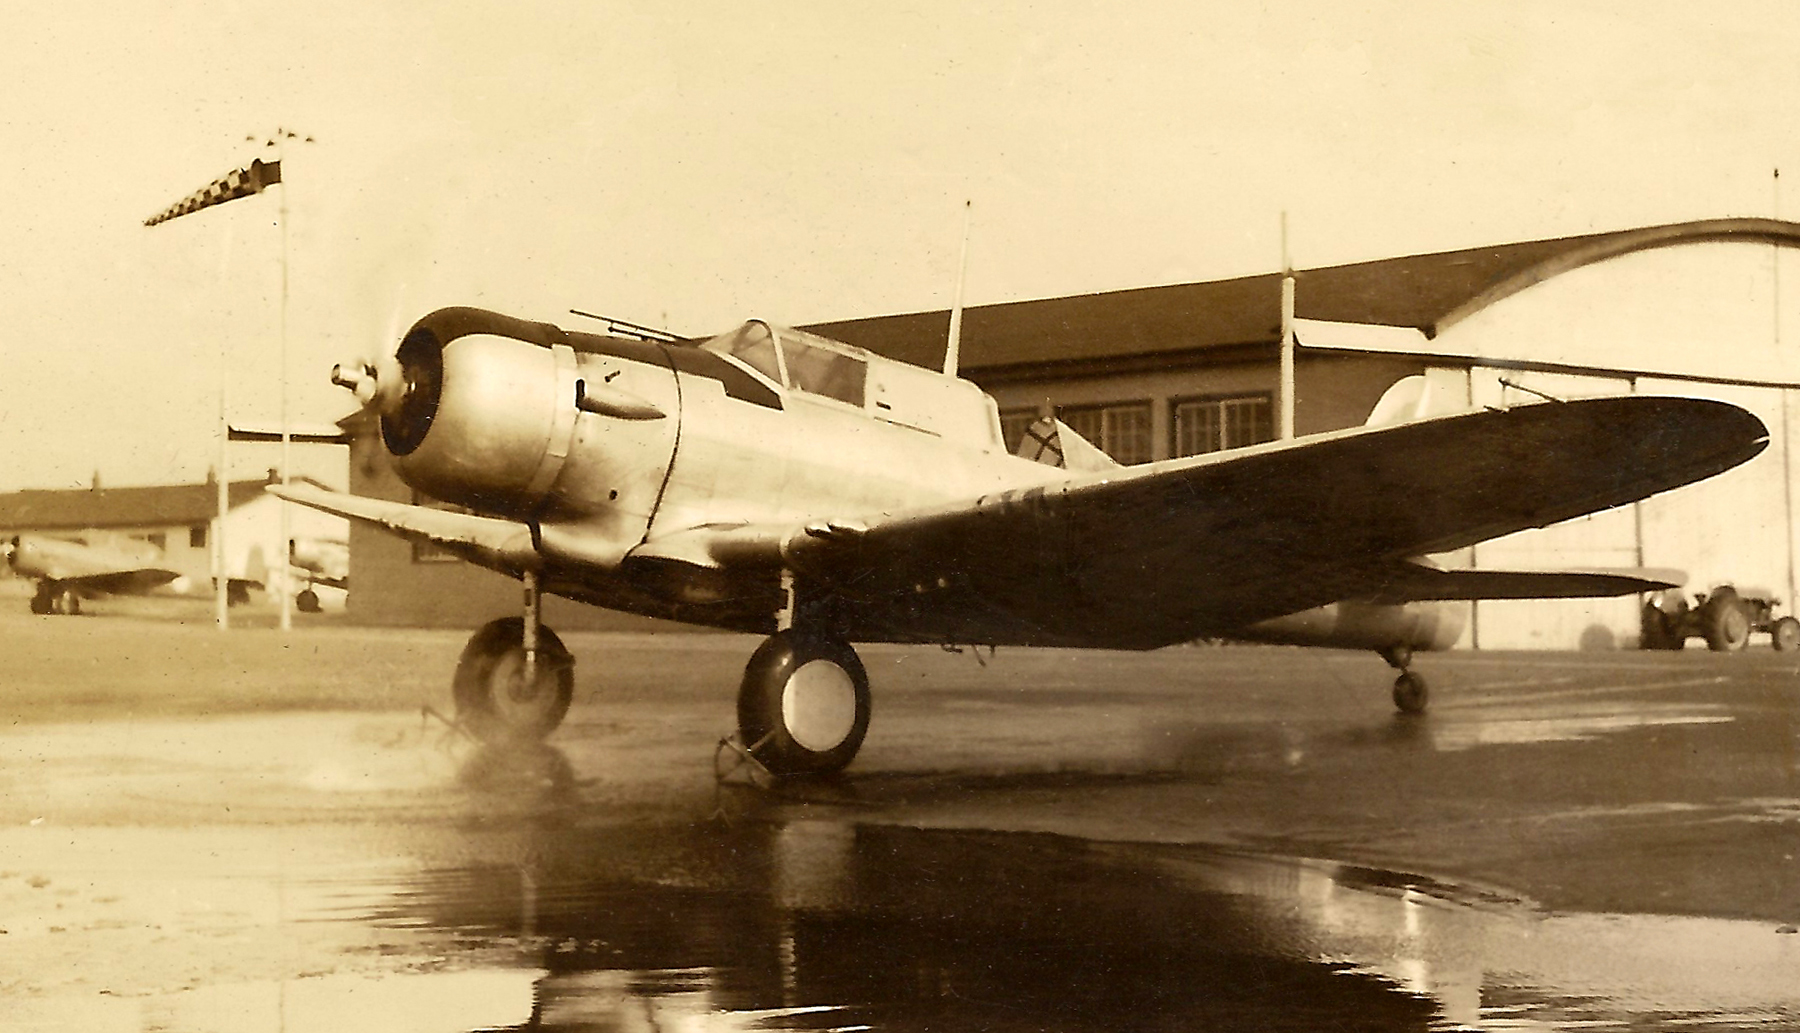 A Second World War-era Northrop Nomad, seen here, is similar to the aircraft that went down on December 13, 1940, in Ontario's Lake Muskoka.